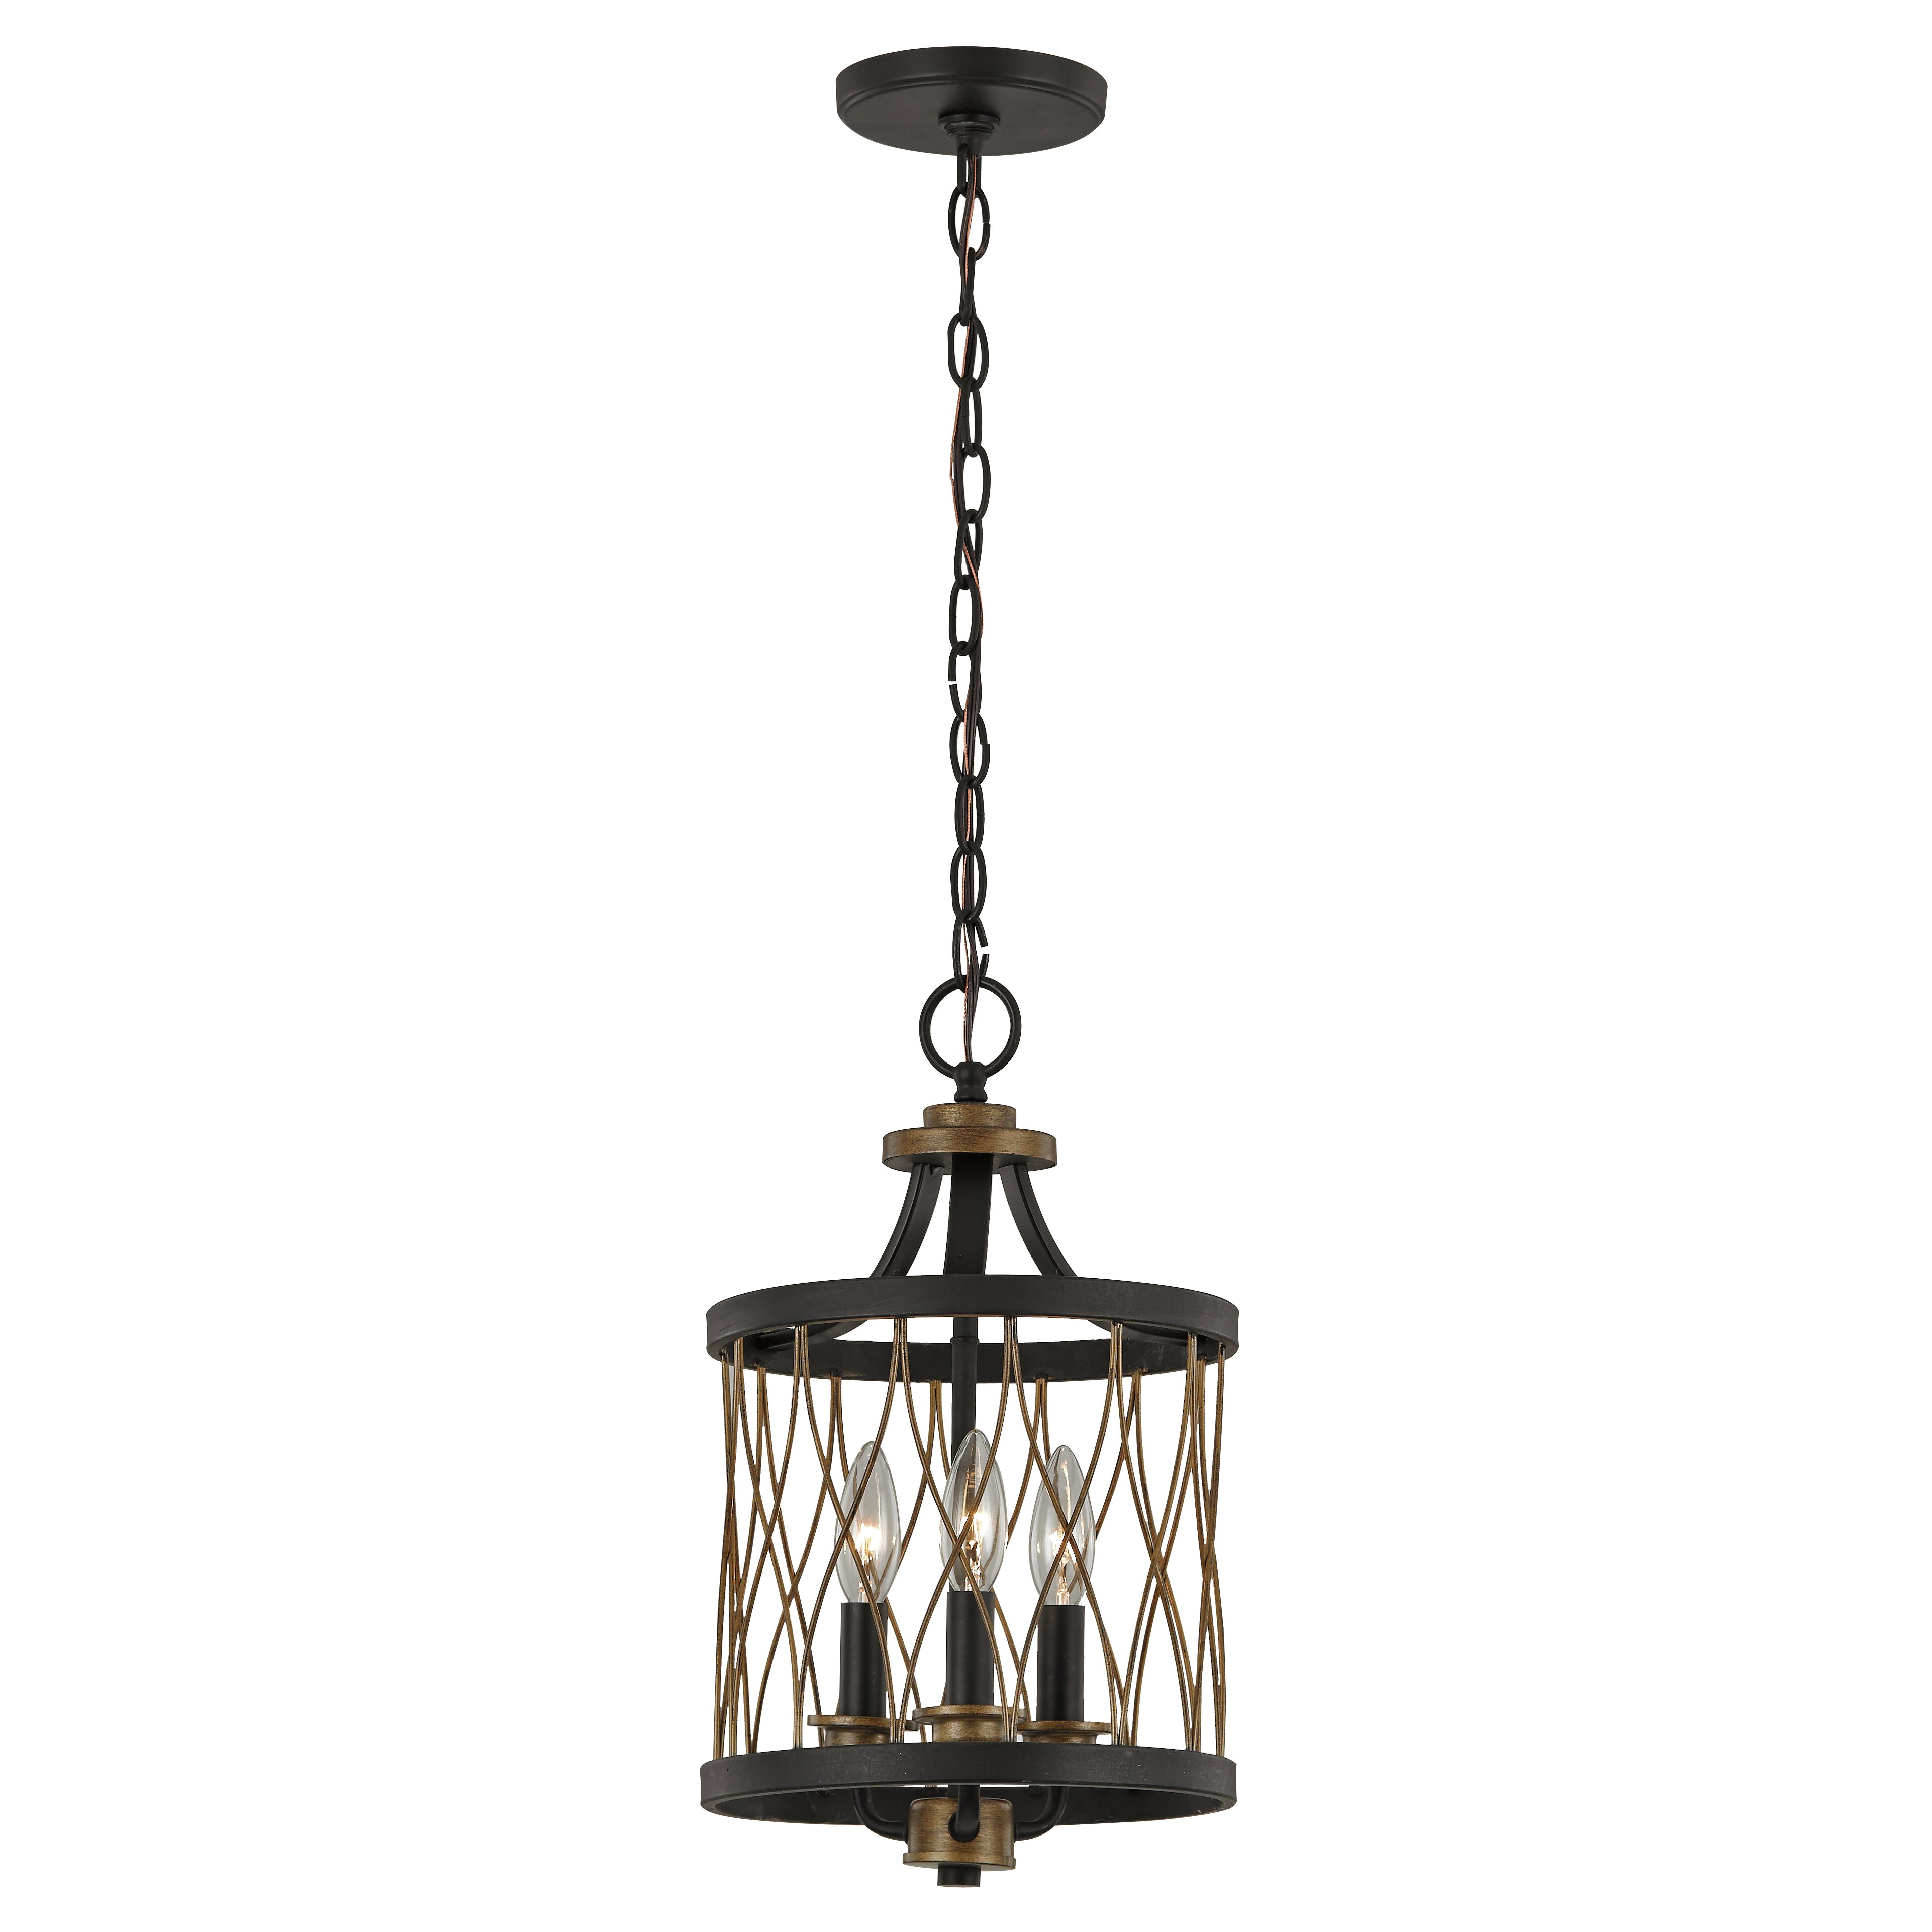 Laurel Foundry Modern Farmhouse Denise 3 Light Drum